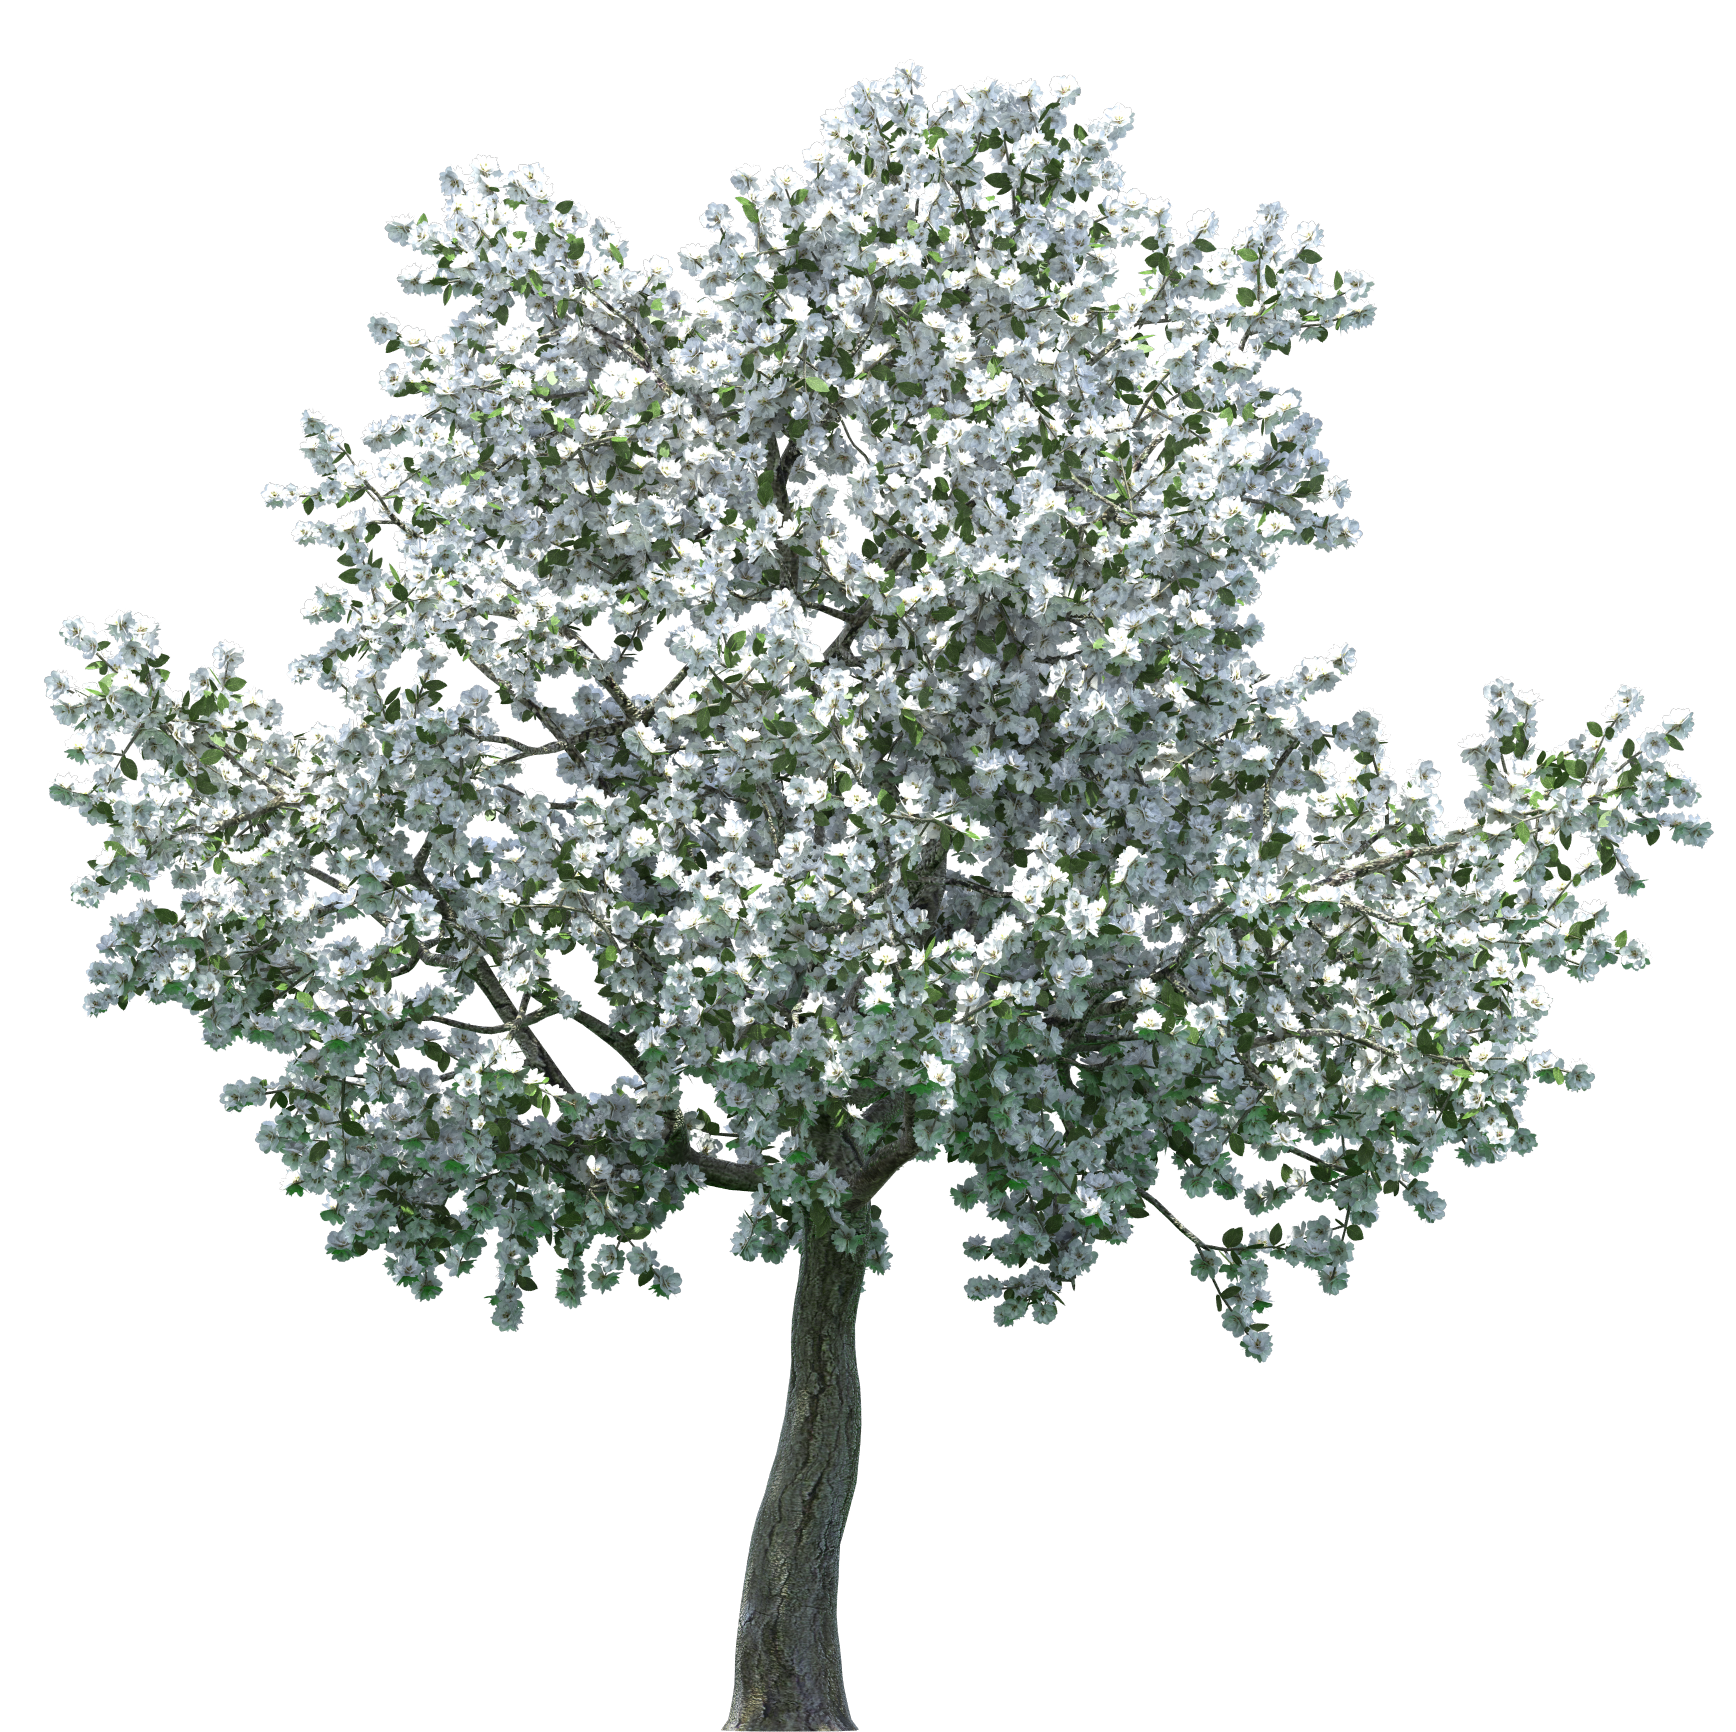 Clipart road tree. Realistic blossom png clip